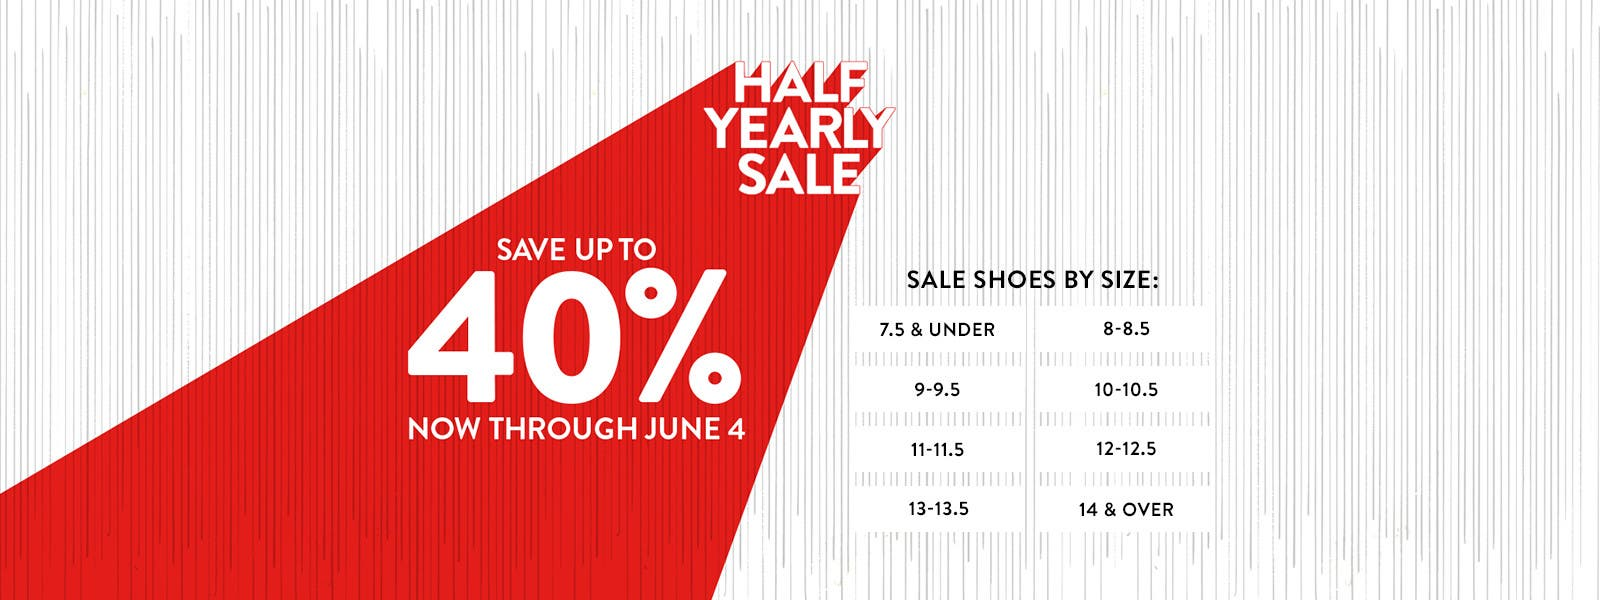 Half-Yearly Sale. Save up to 40% through June 4. Shop men's sale shoes by size.